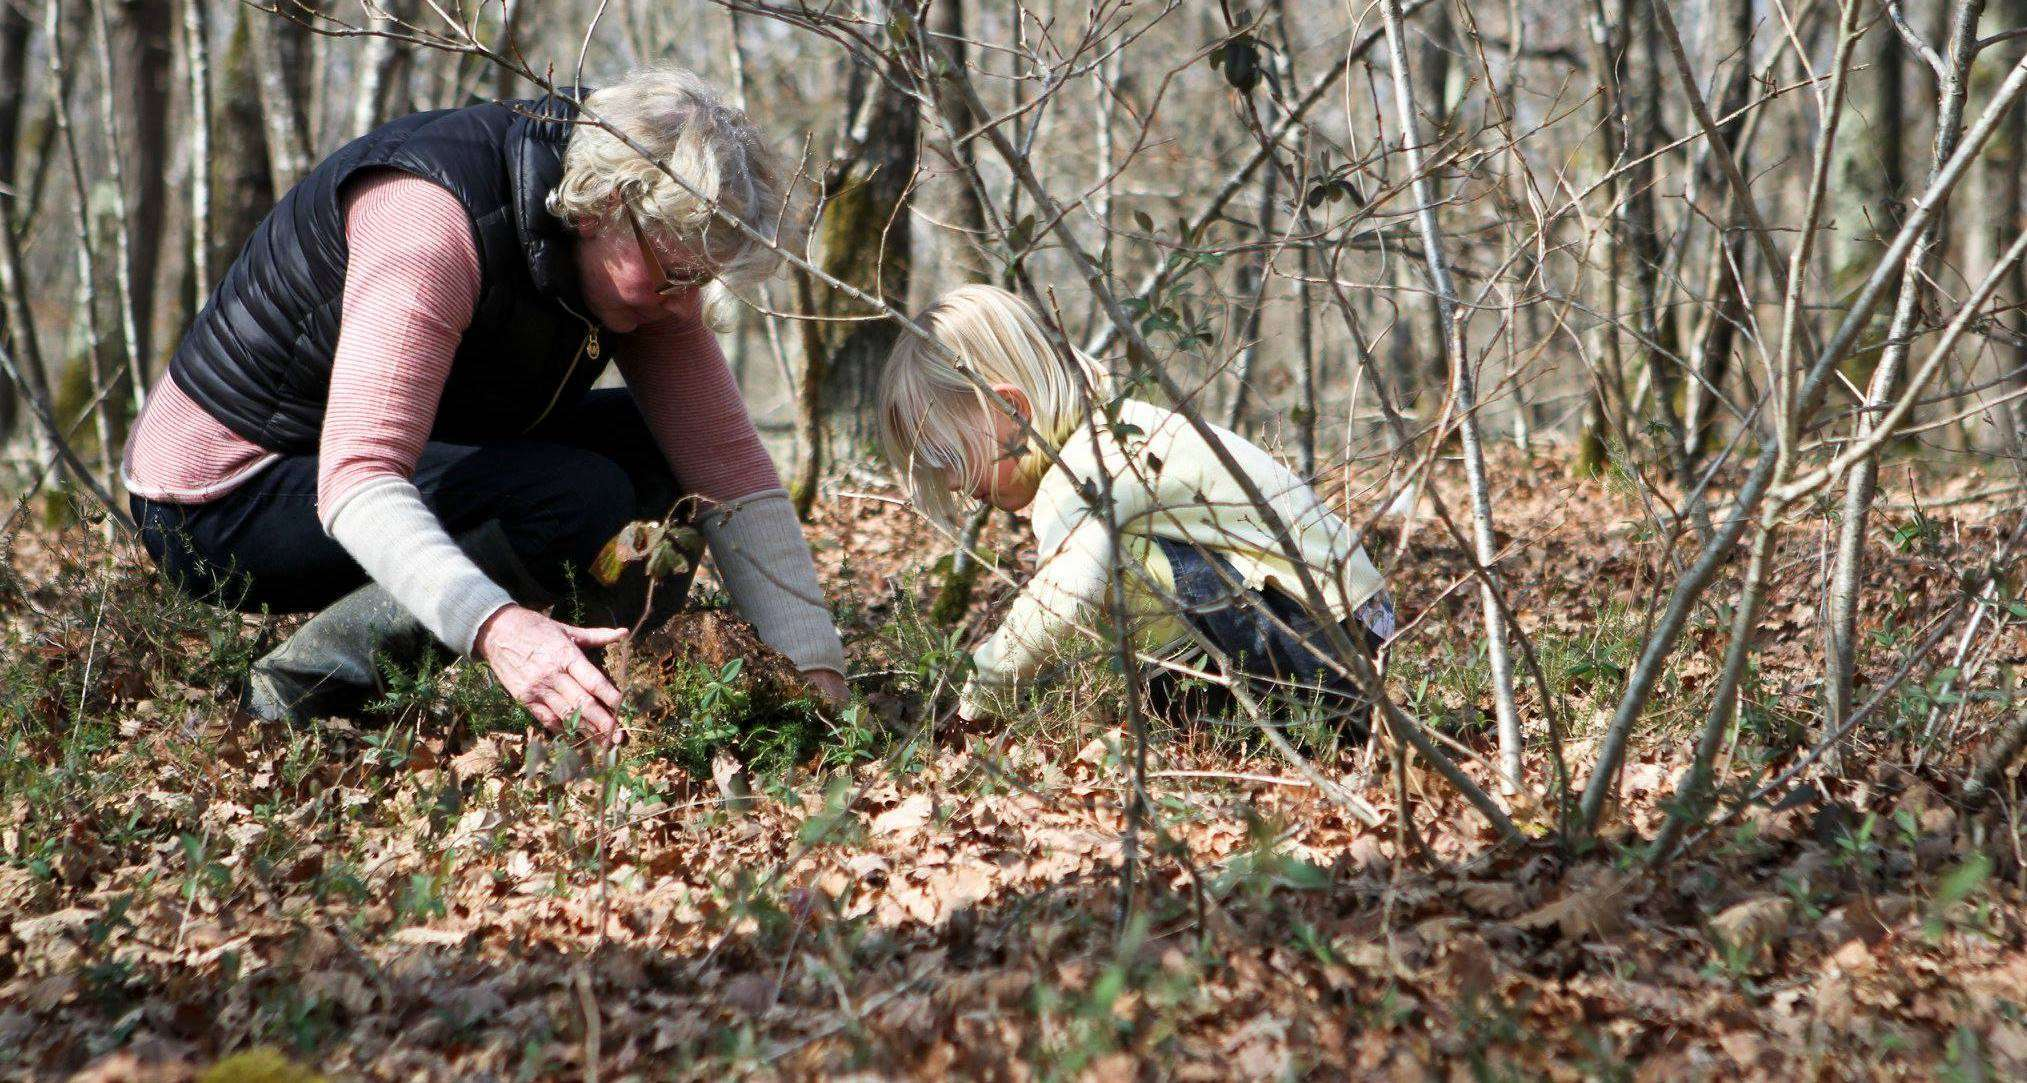 Searching for woodland treasures